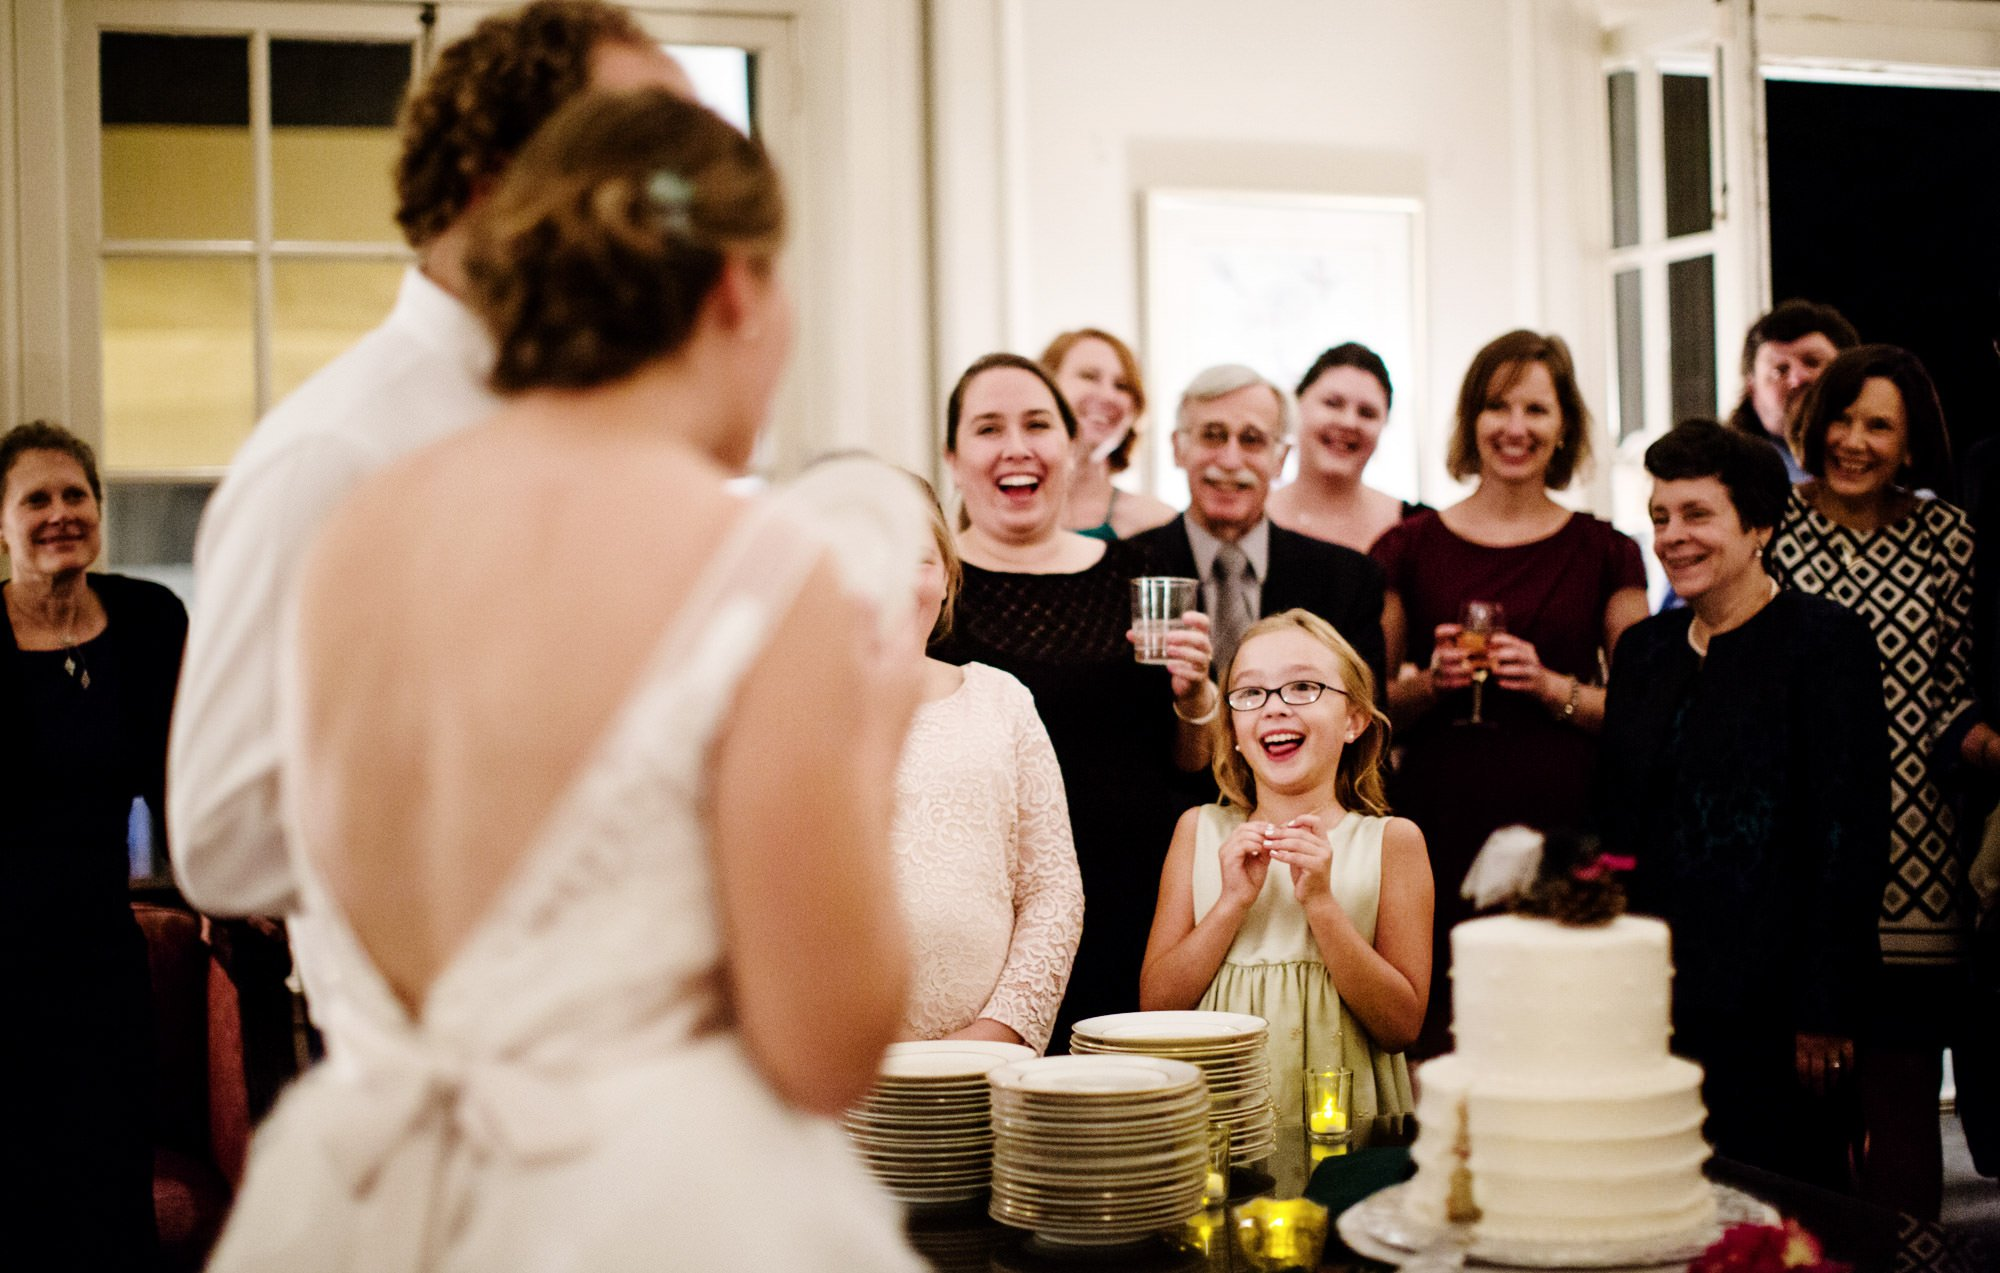 Guests watch the couple cut the wedding cake.